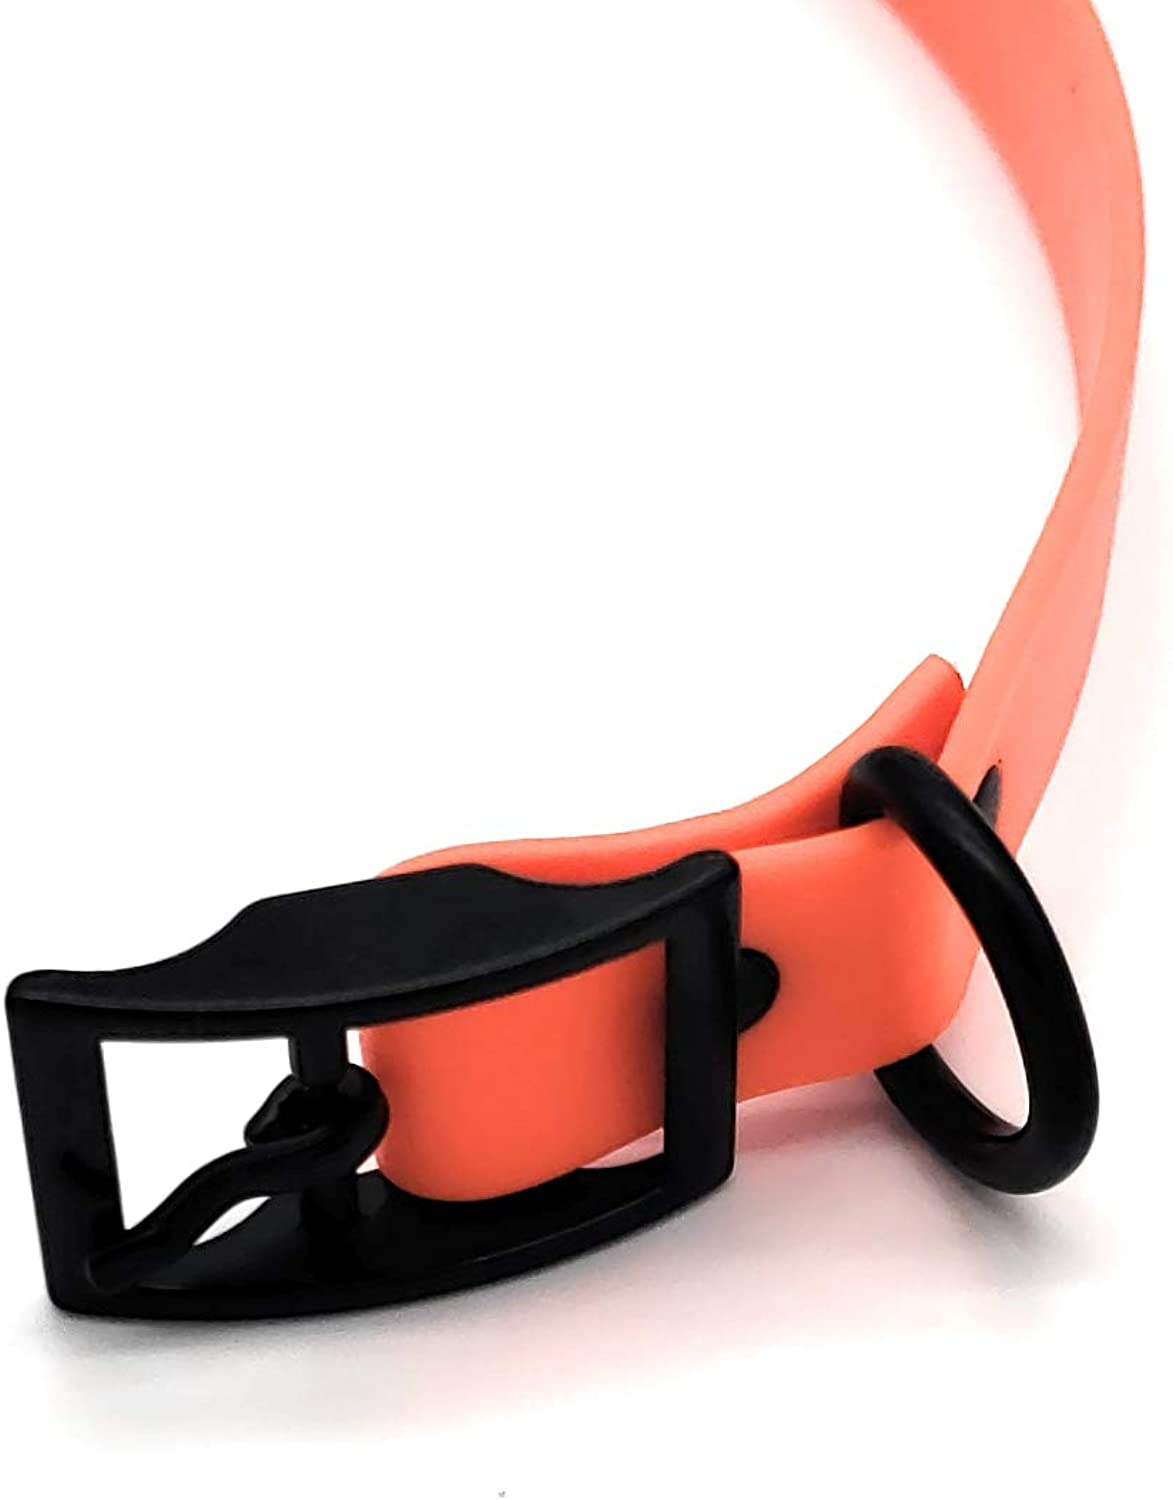 M,L, XL Biothane Dog Collars, Can Collar, Compra un Collar Help a Veteran.Meteo e Waterrepous Puppy e Dog Collar con Black Hardware per Grandi Cani e XL Dogs (Medium (13.2517.75') 1'Wide, Orange)